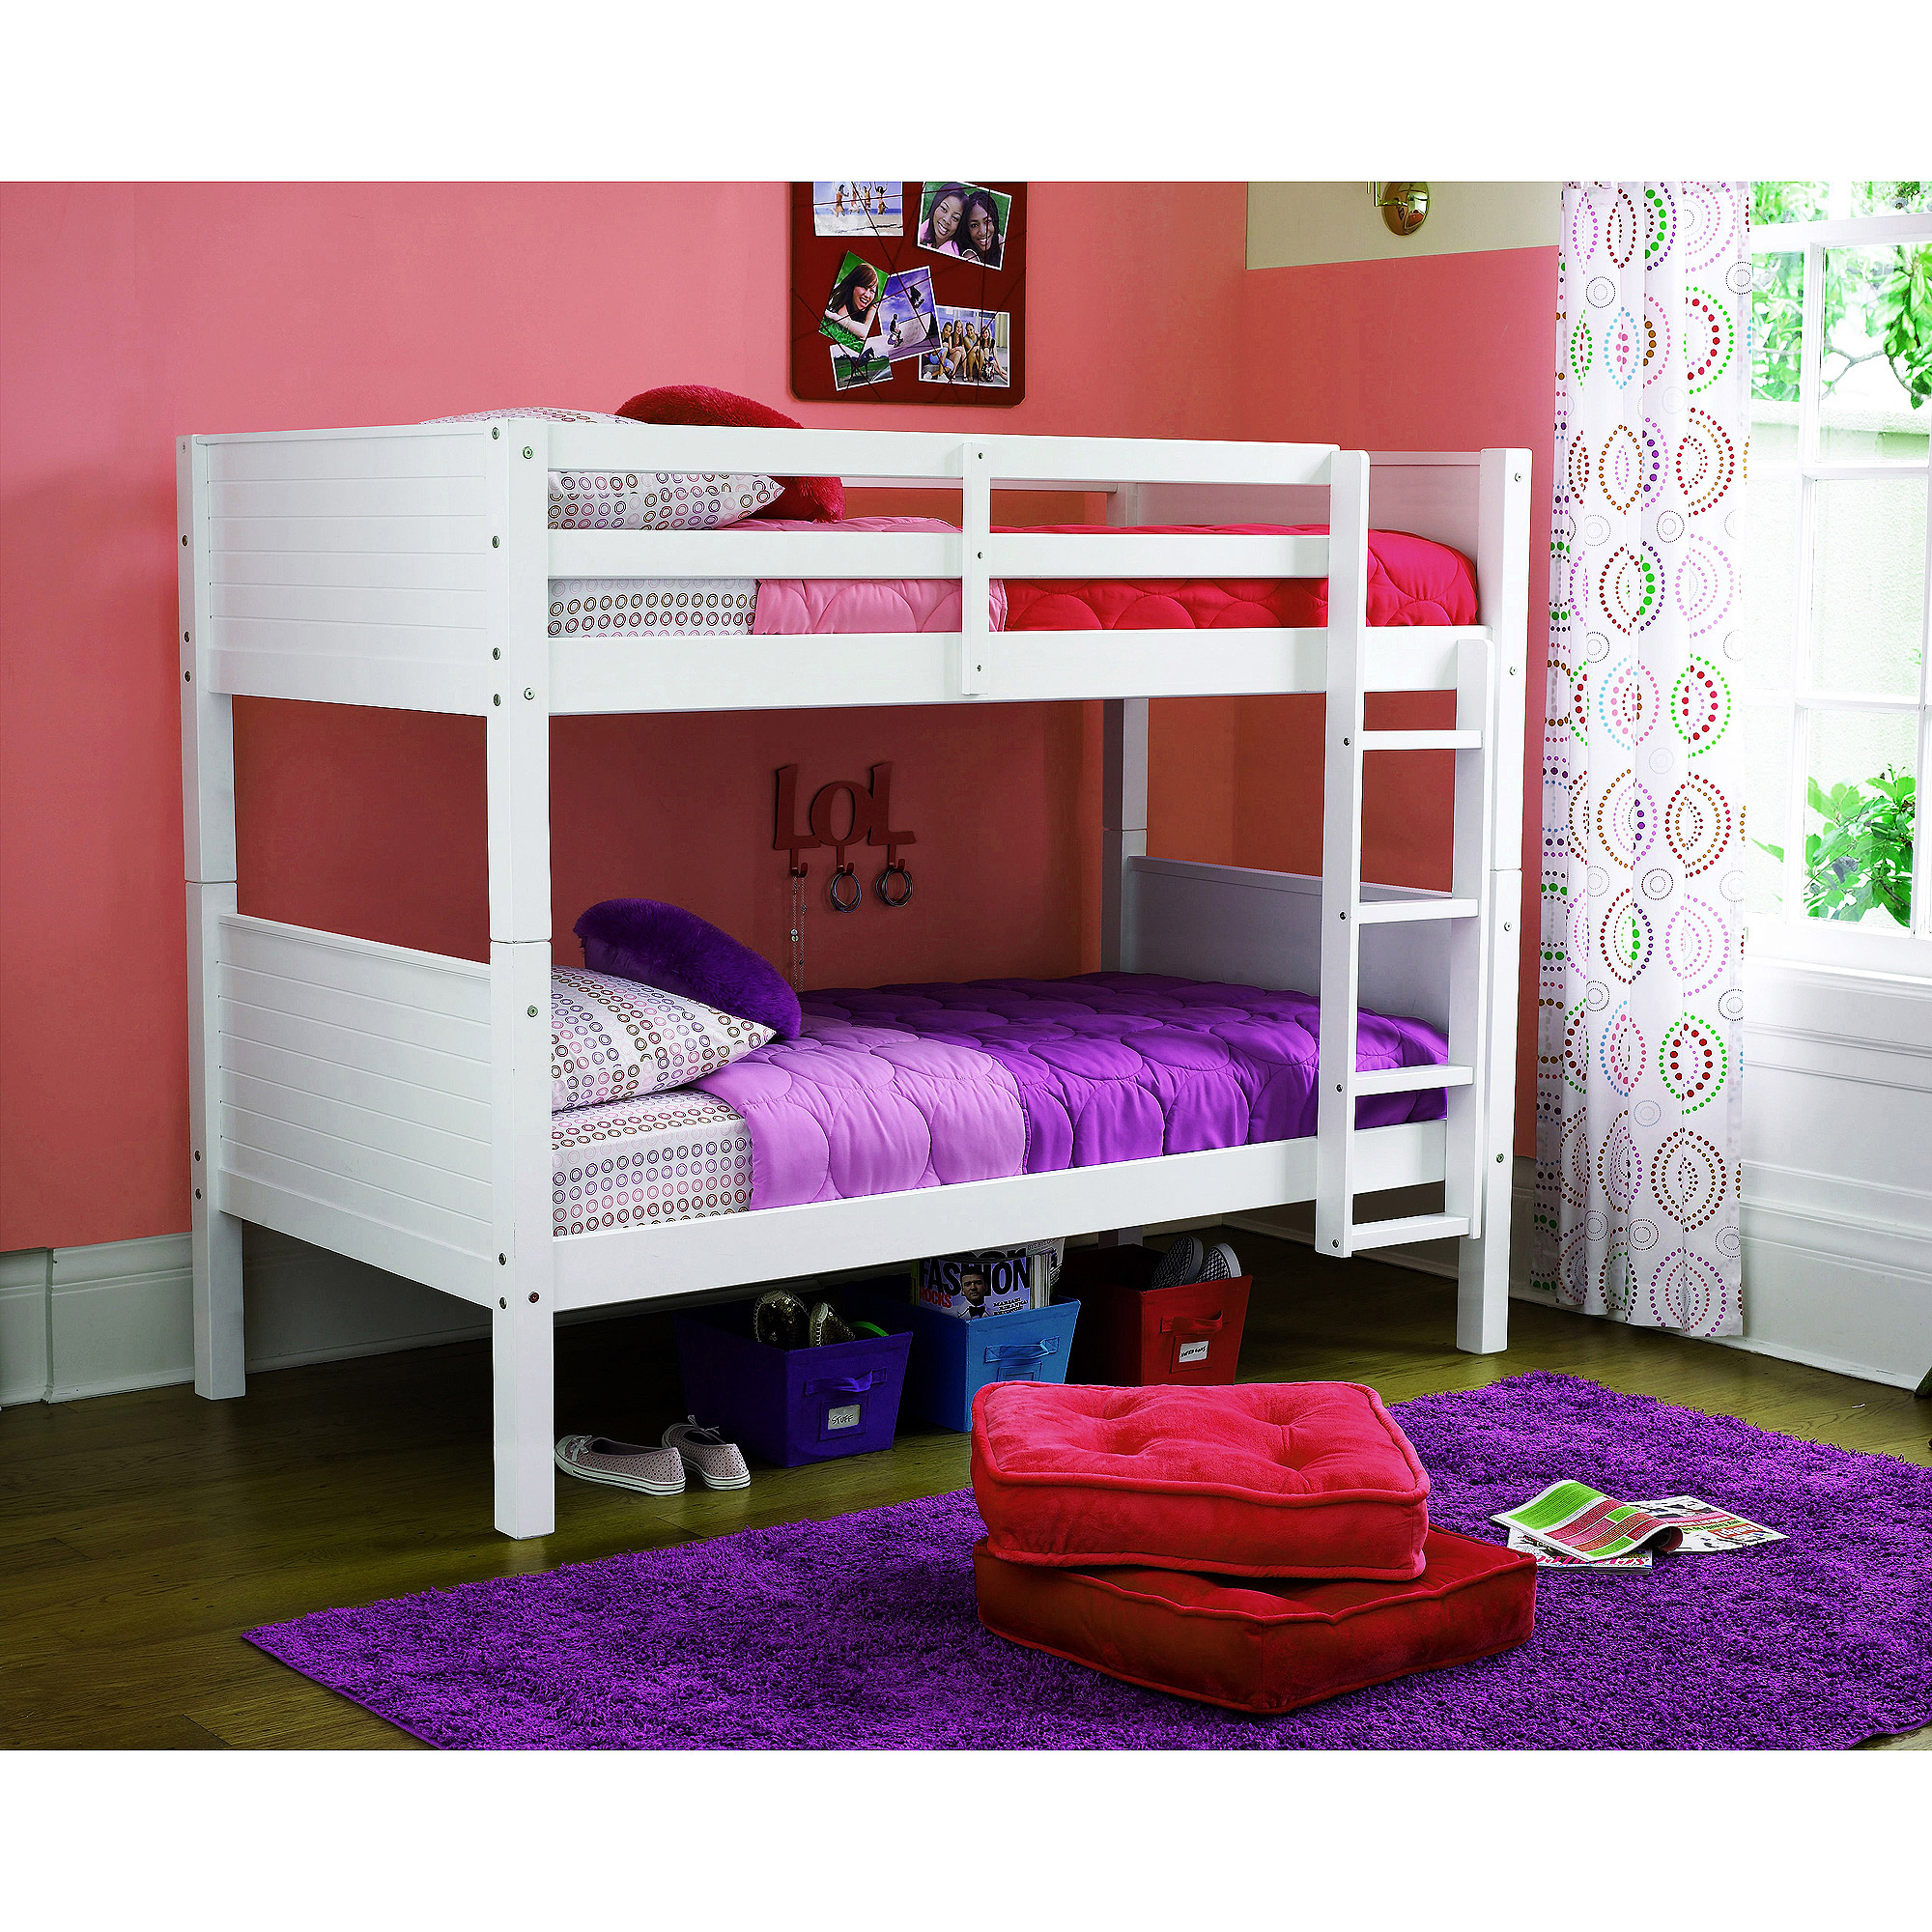 Dorel Home your zone zzz place to be twin over twin bunk bed, Multiple Finishes